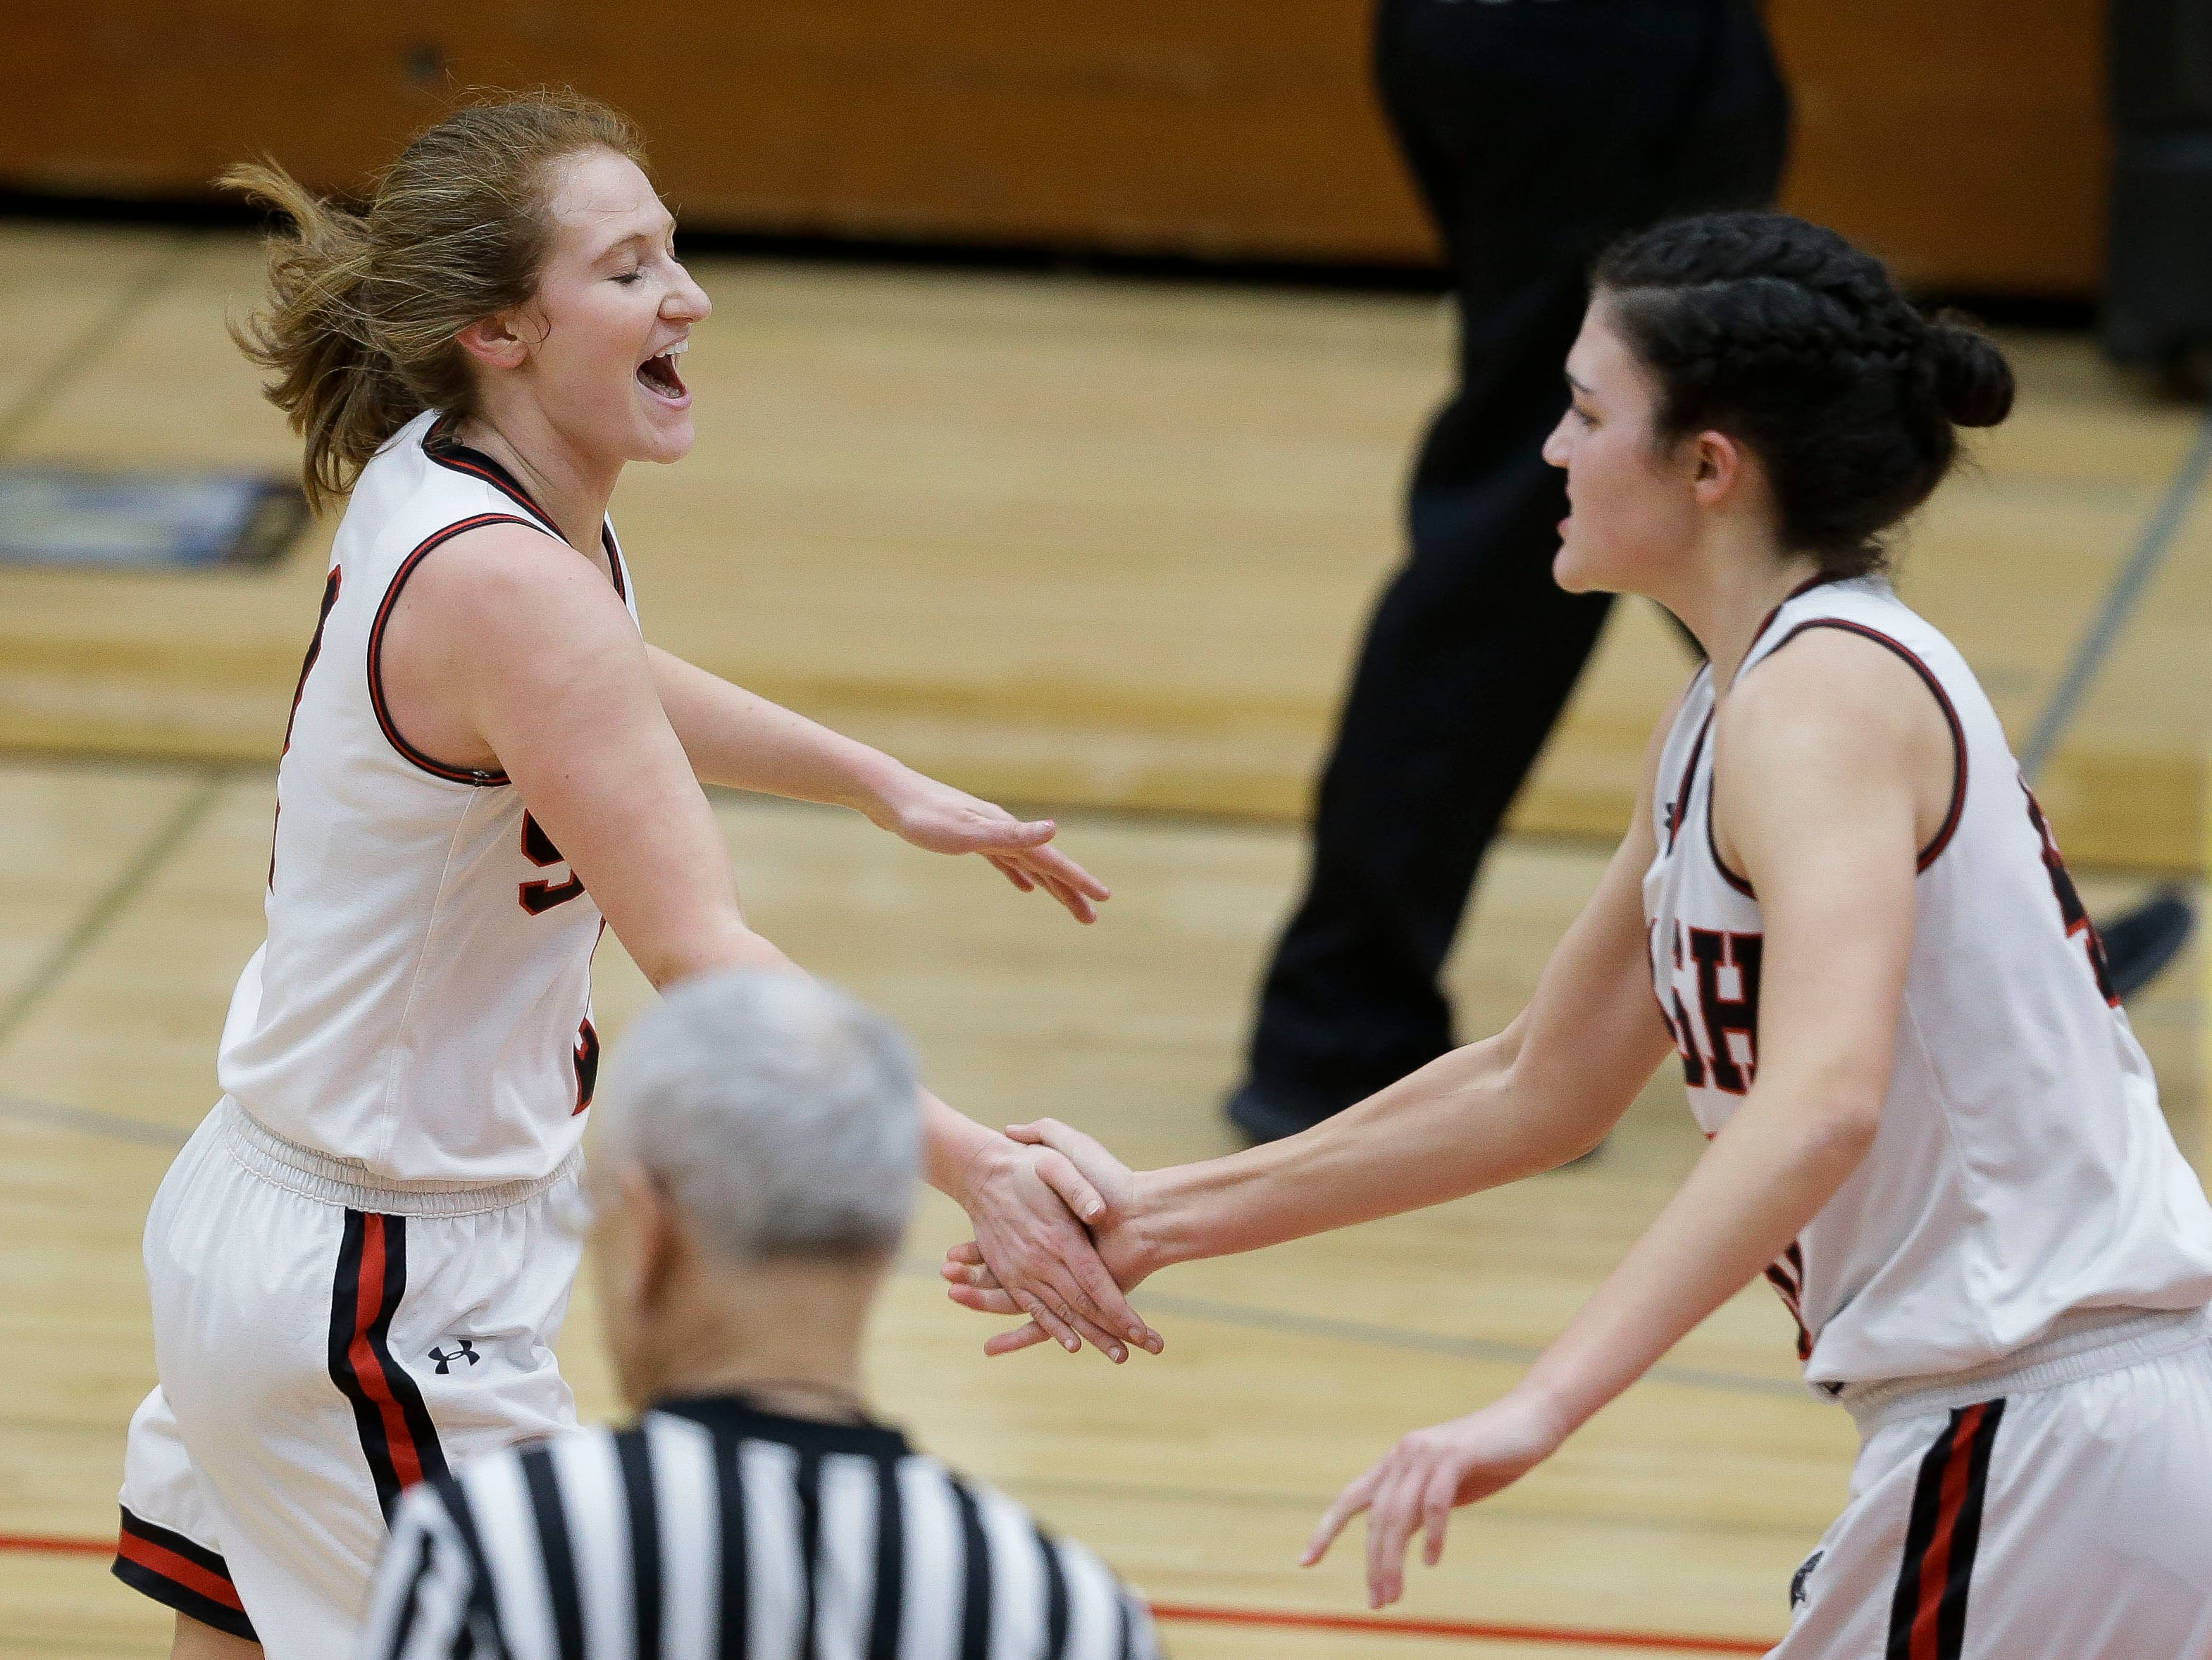 SPASH's Rachel Lummis (2) congratulates SPASH's Leah Earnest (40) after a made 3-pointer against Wausau West on Thursday, February 14, 2019, at SPASH in Stevens Point, Wis.Tork Mason/USA TODAY NETWORK-Wisconsin